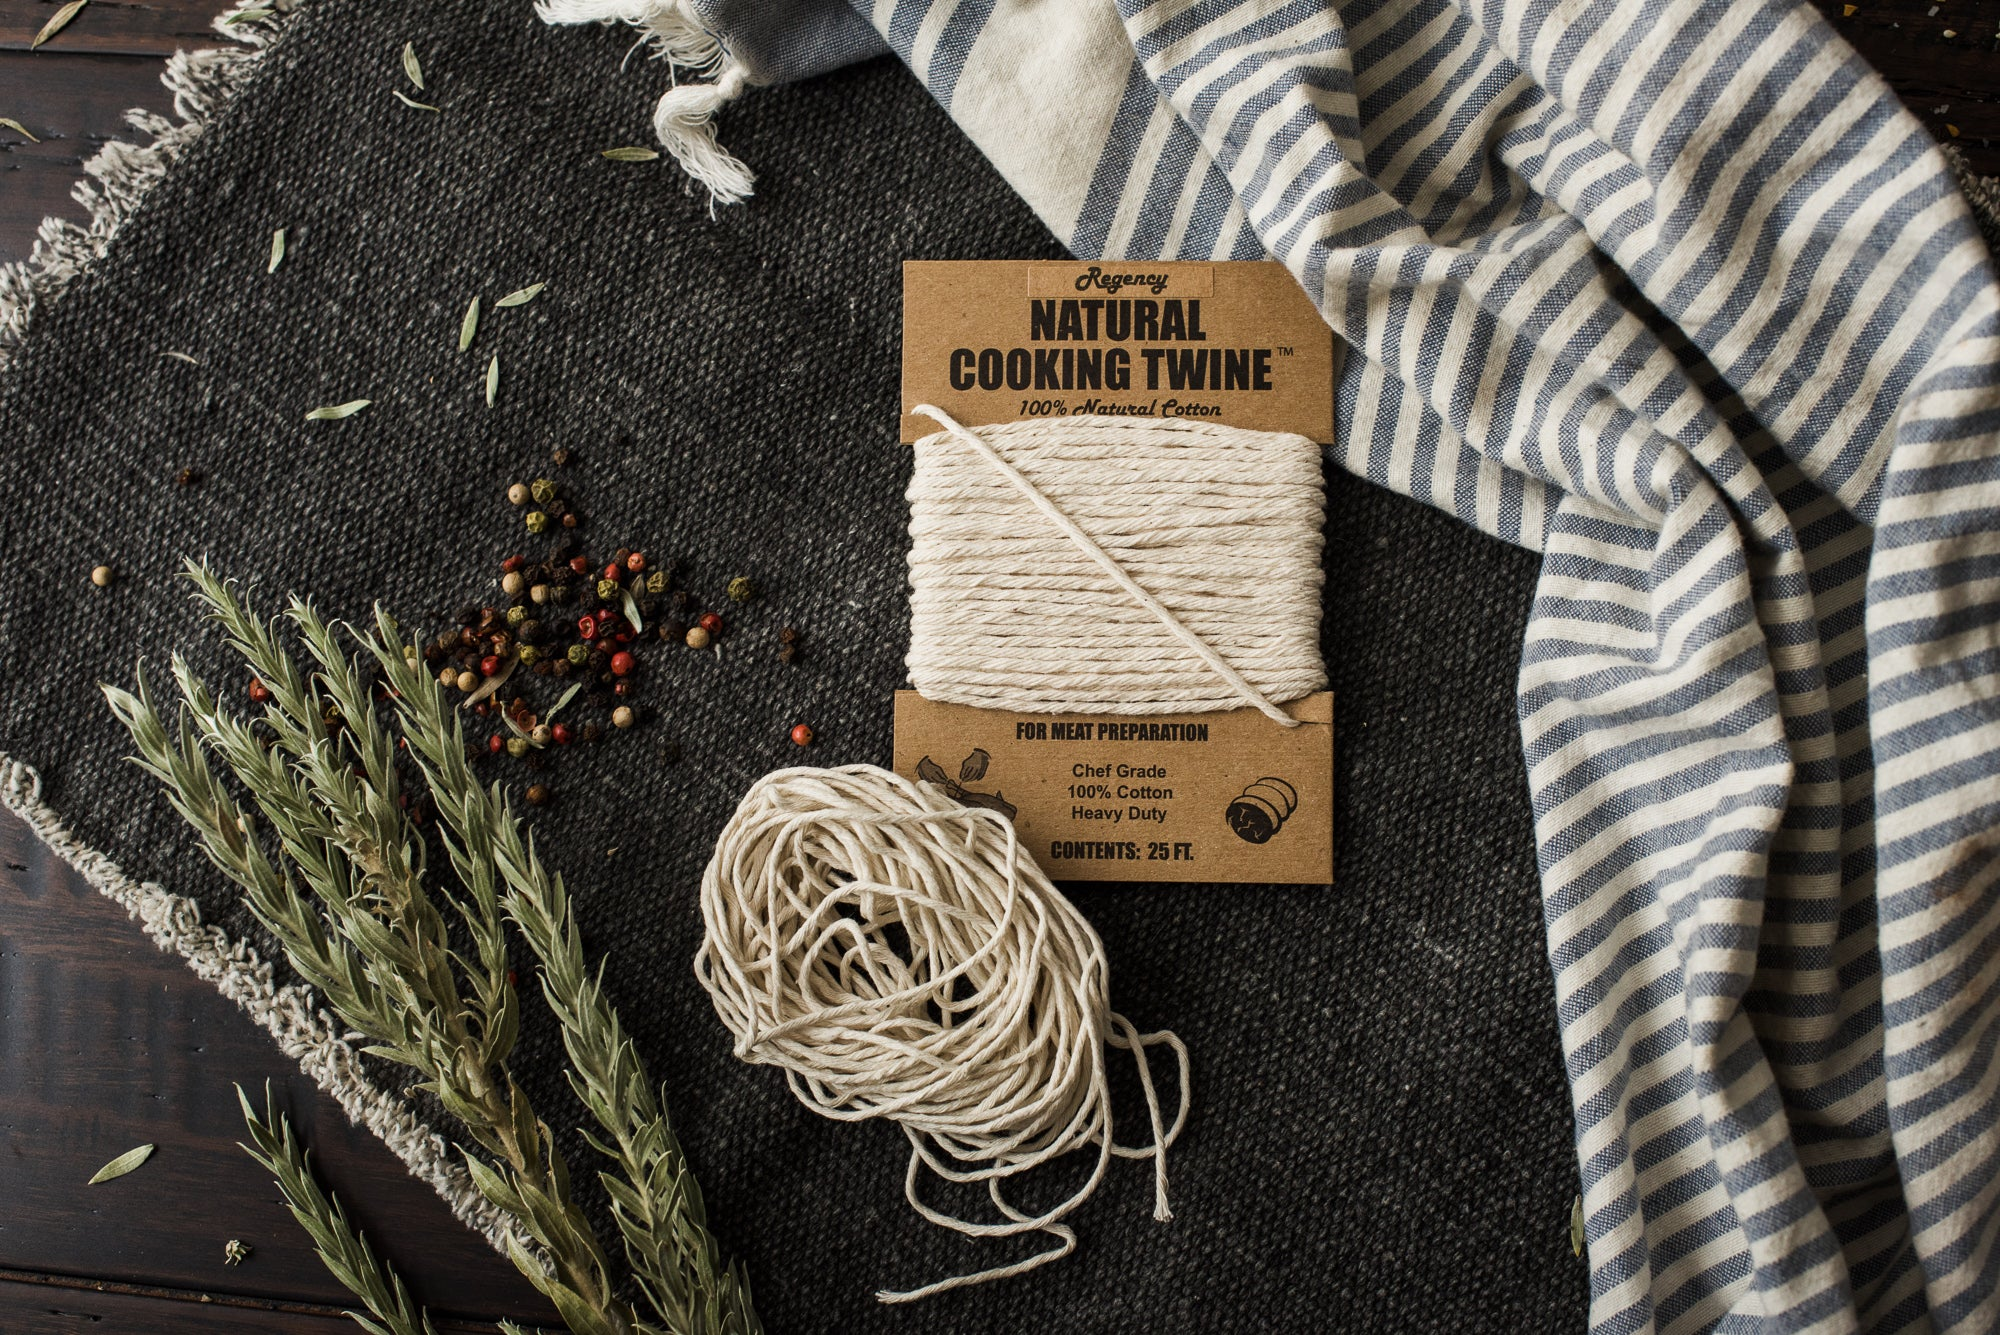 <a target='_blank' href='https://amzn.to/2L5CMdc'>Regency Wraps Natural Cooking Twine</a>